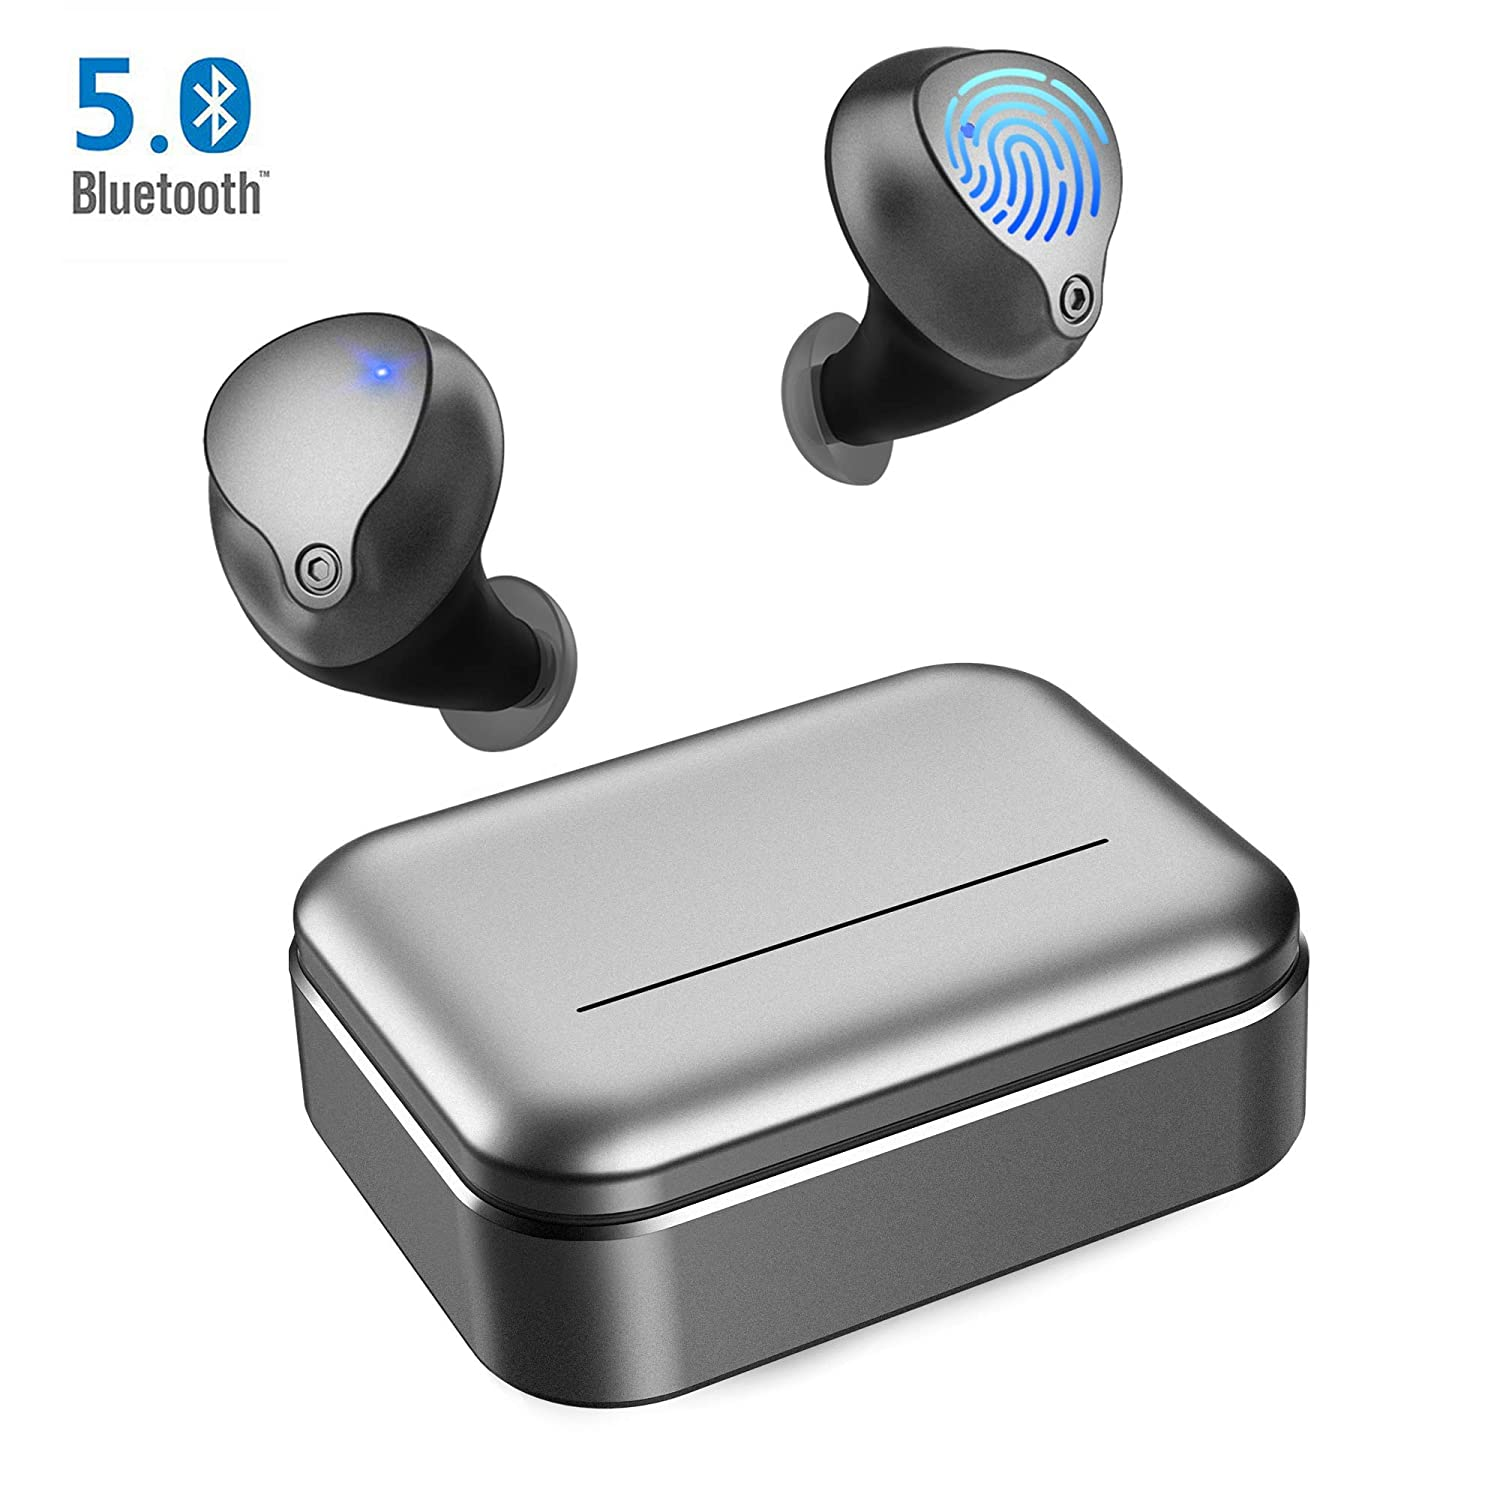 Wireless Earbuds, Bluetooth 5.0 Wireless headphones with 3200mAh Slide Charging Case Auto Pairing with 180hrs Total Play Time IPX5 sweatproof Stereo Bluetooth Earbuds with Built in Mic for Work Sport